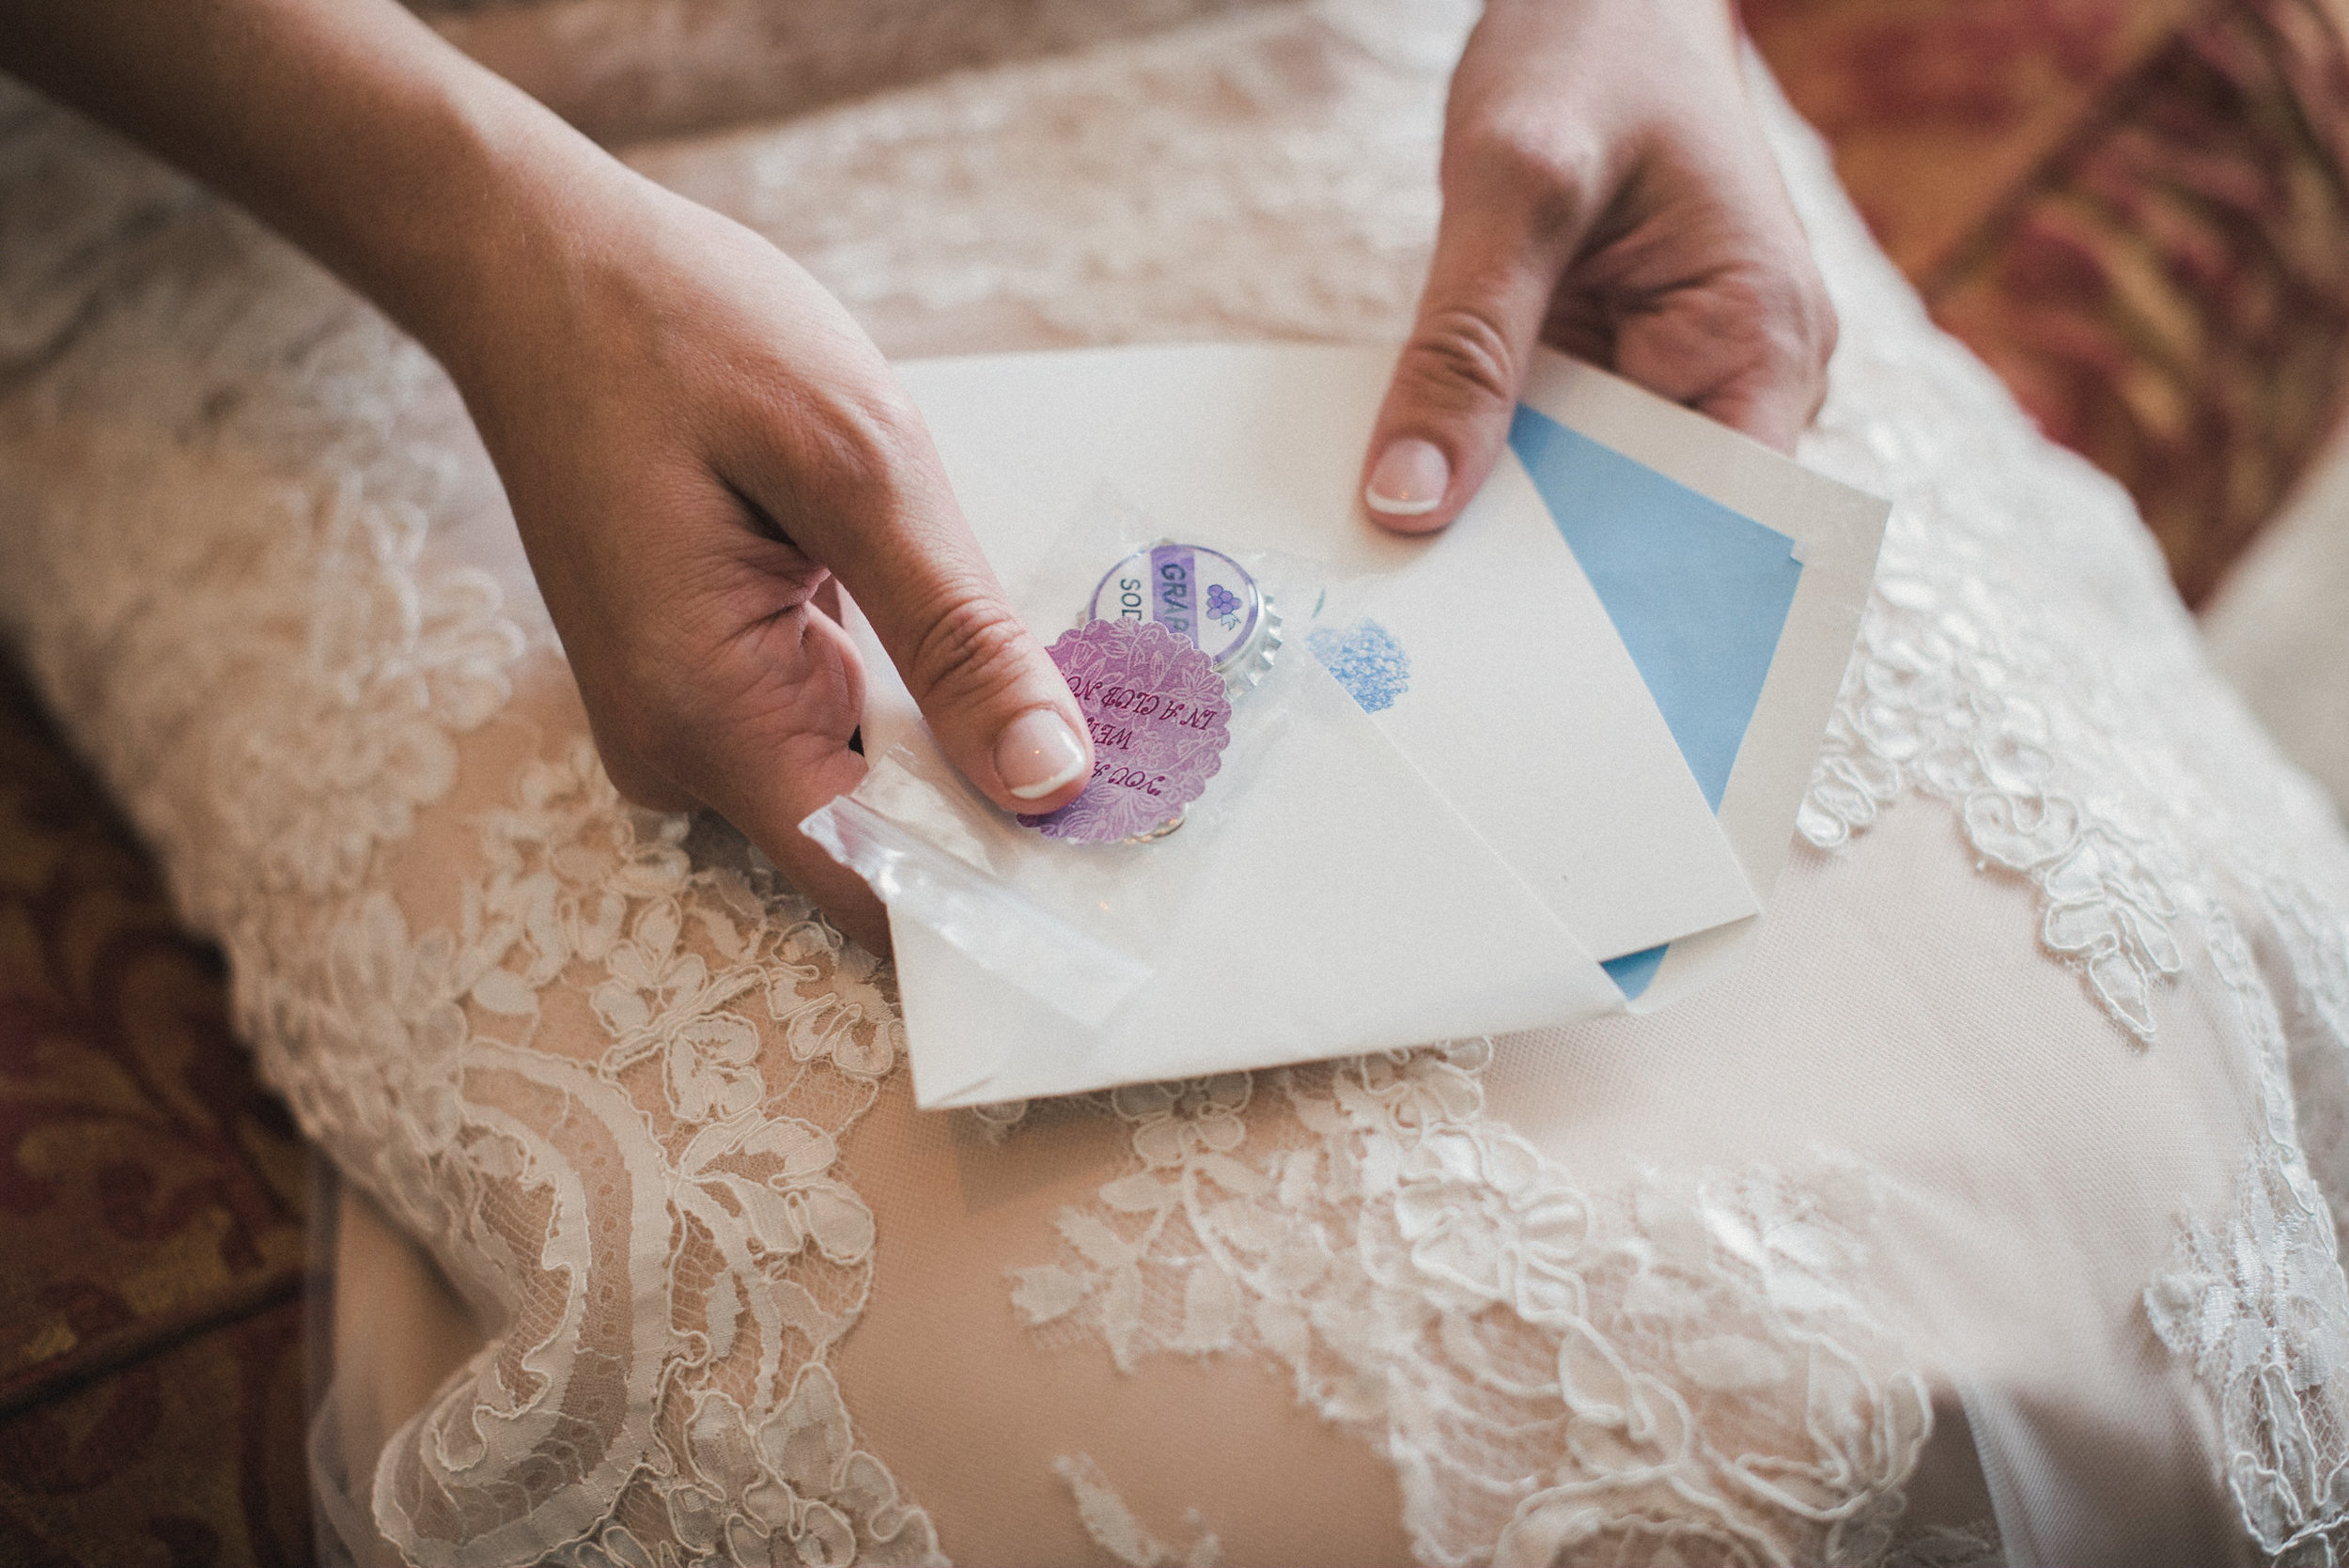 Bride's letter from groom